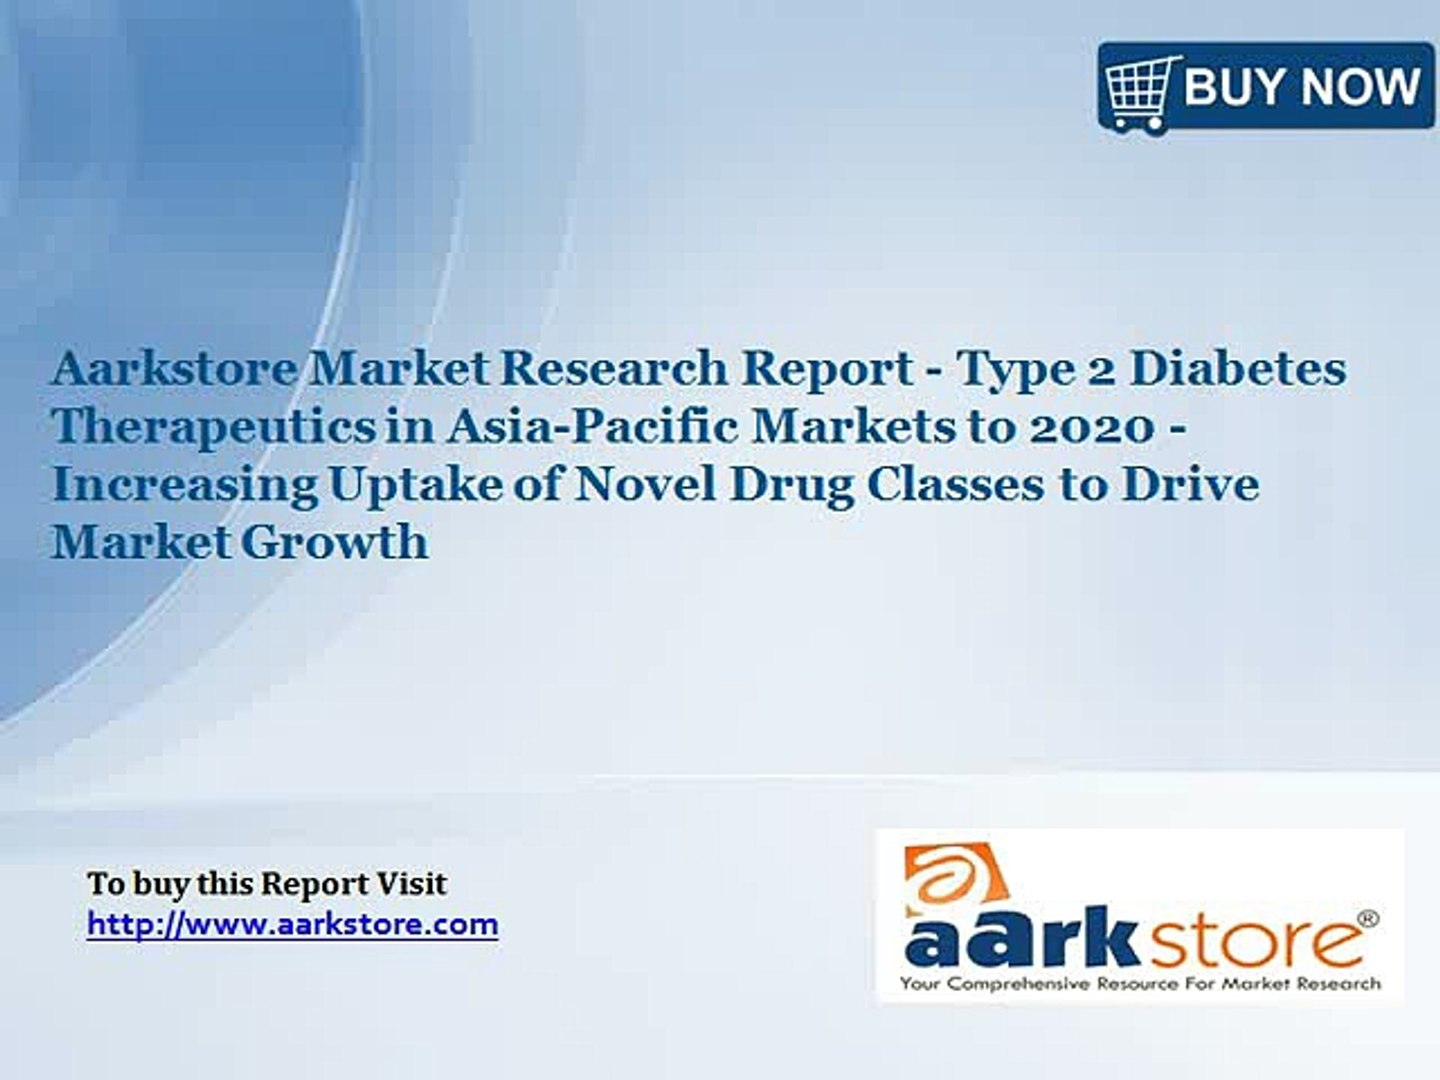 Aarkstore Market Research Report - Type 2 Diabetes Therapeutics in Asia-Pacific Markets to 2020 - In